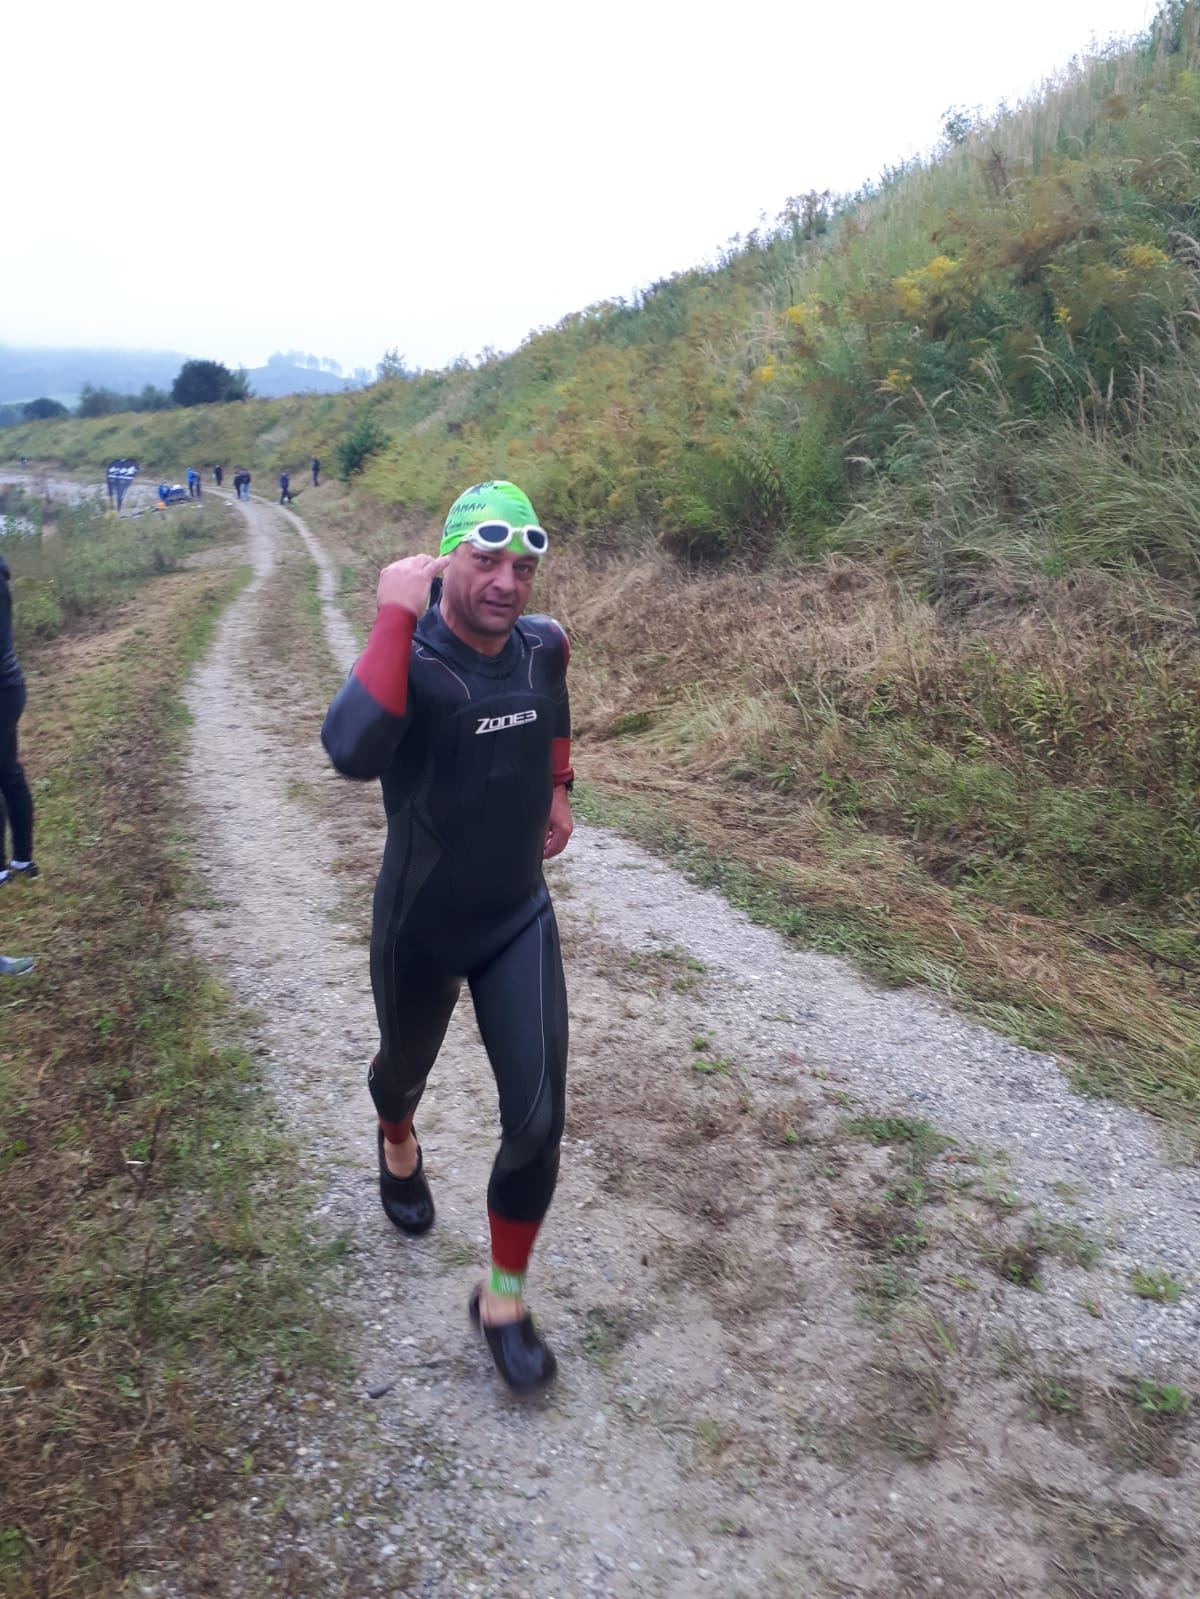 Triathlon -rtr-weiz-WhatsApp-Image-2020-09-20-at-17.51.531-STEIRAMAN - Styrian  X-treme Triathlon 2020